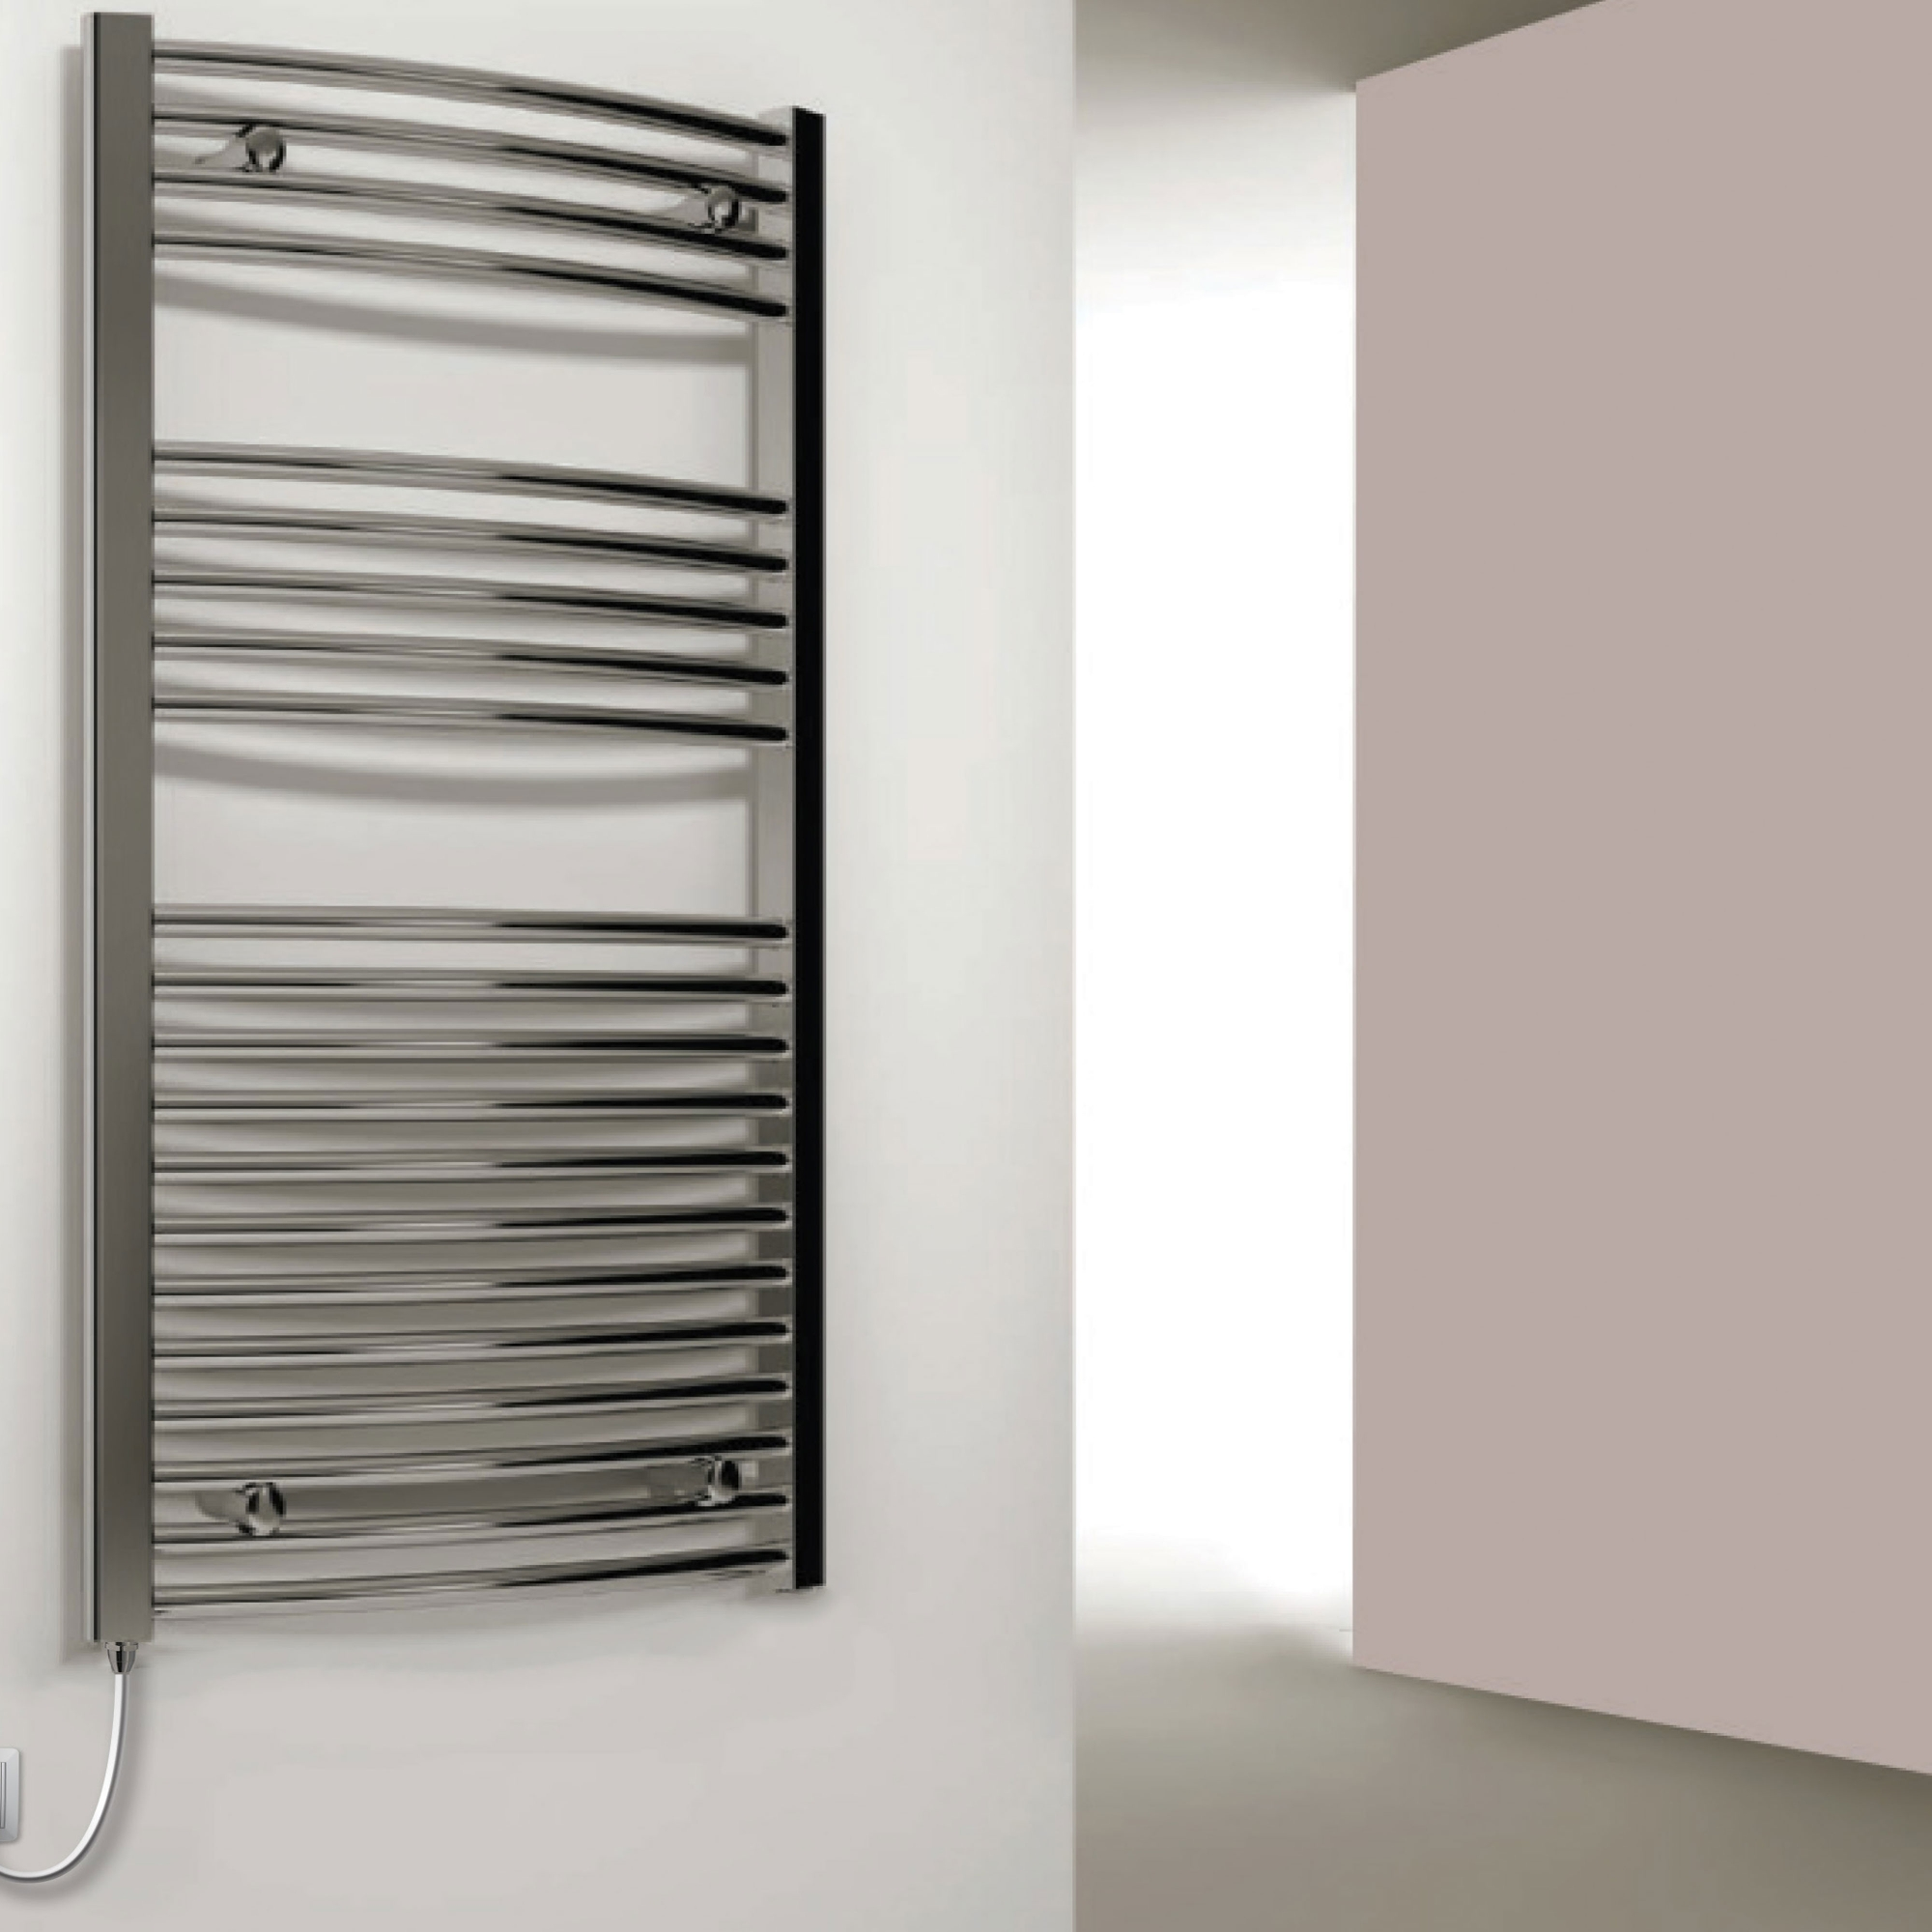 Reina Capo Curved Thermostatic Electric Heated Towel Rail 1600mm H x 400mm W Chrome-0